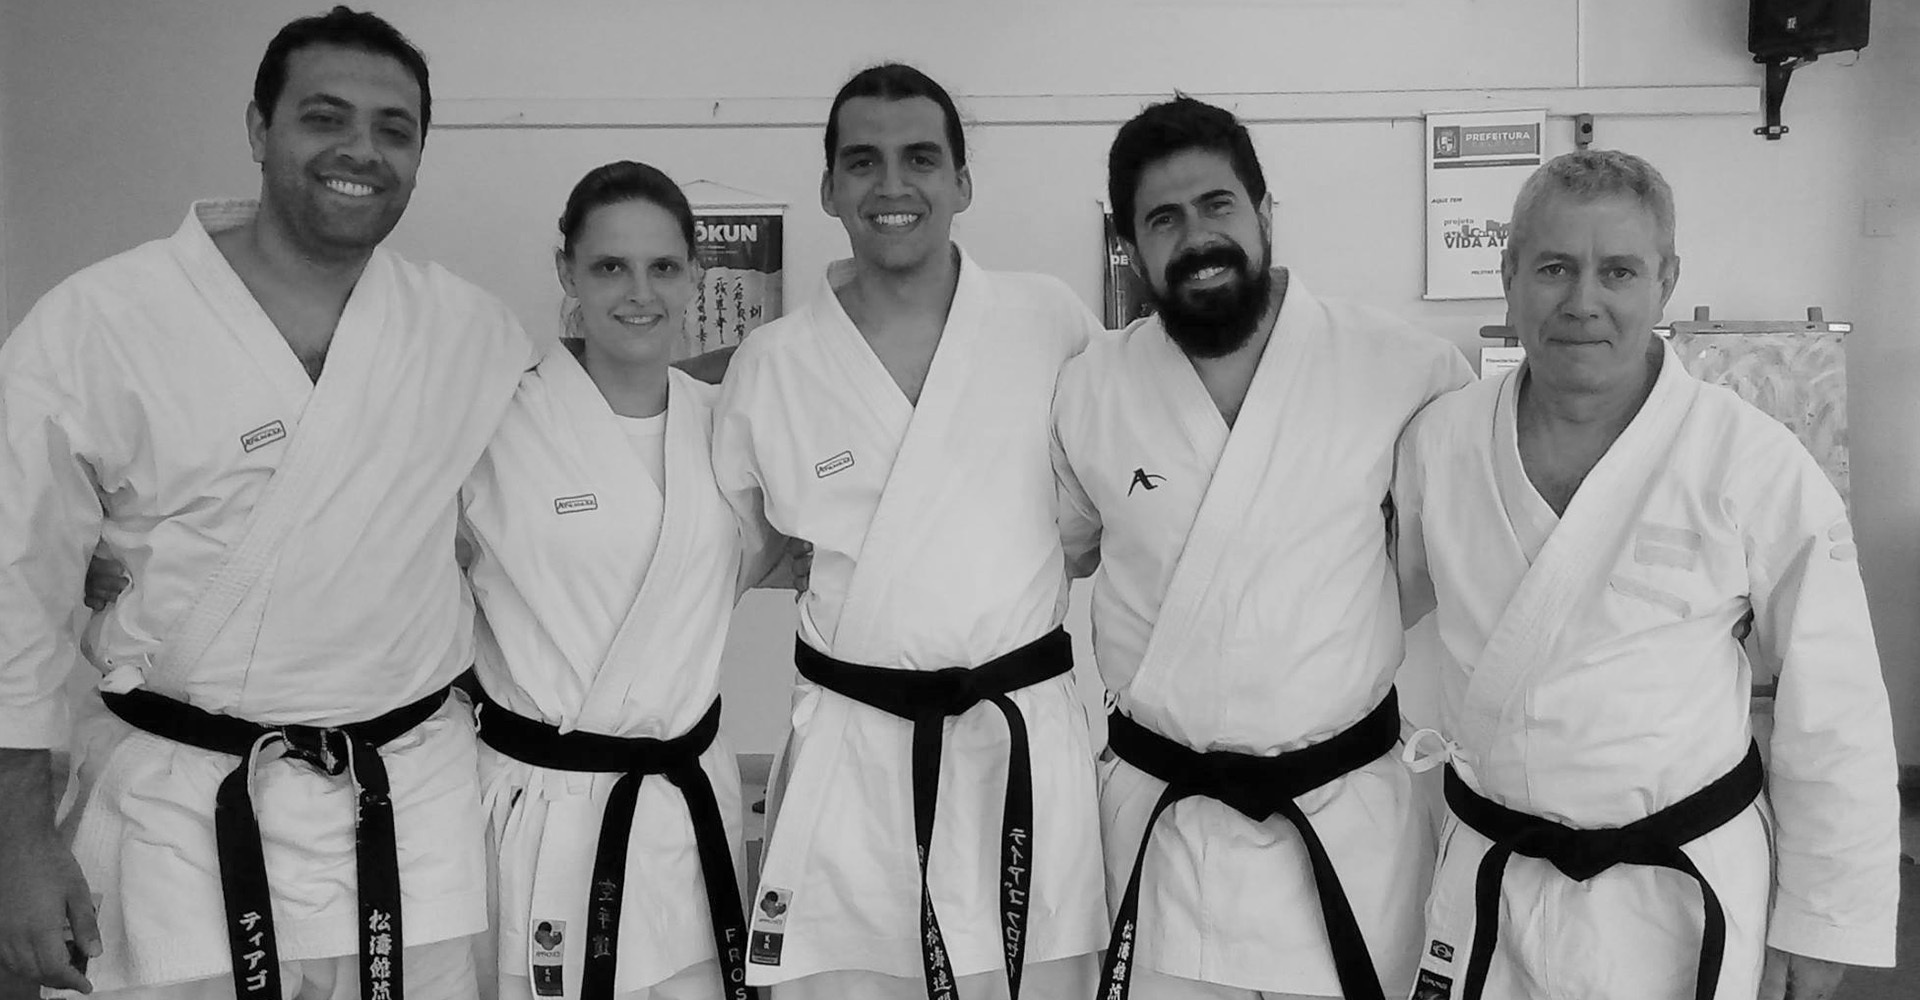 shinjigenkan brazil and canada during dan grading exam